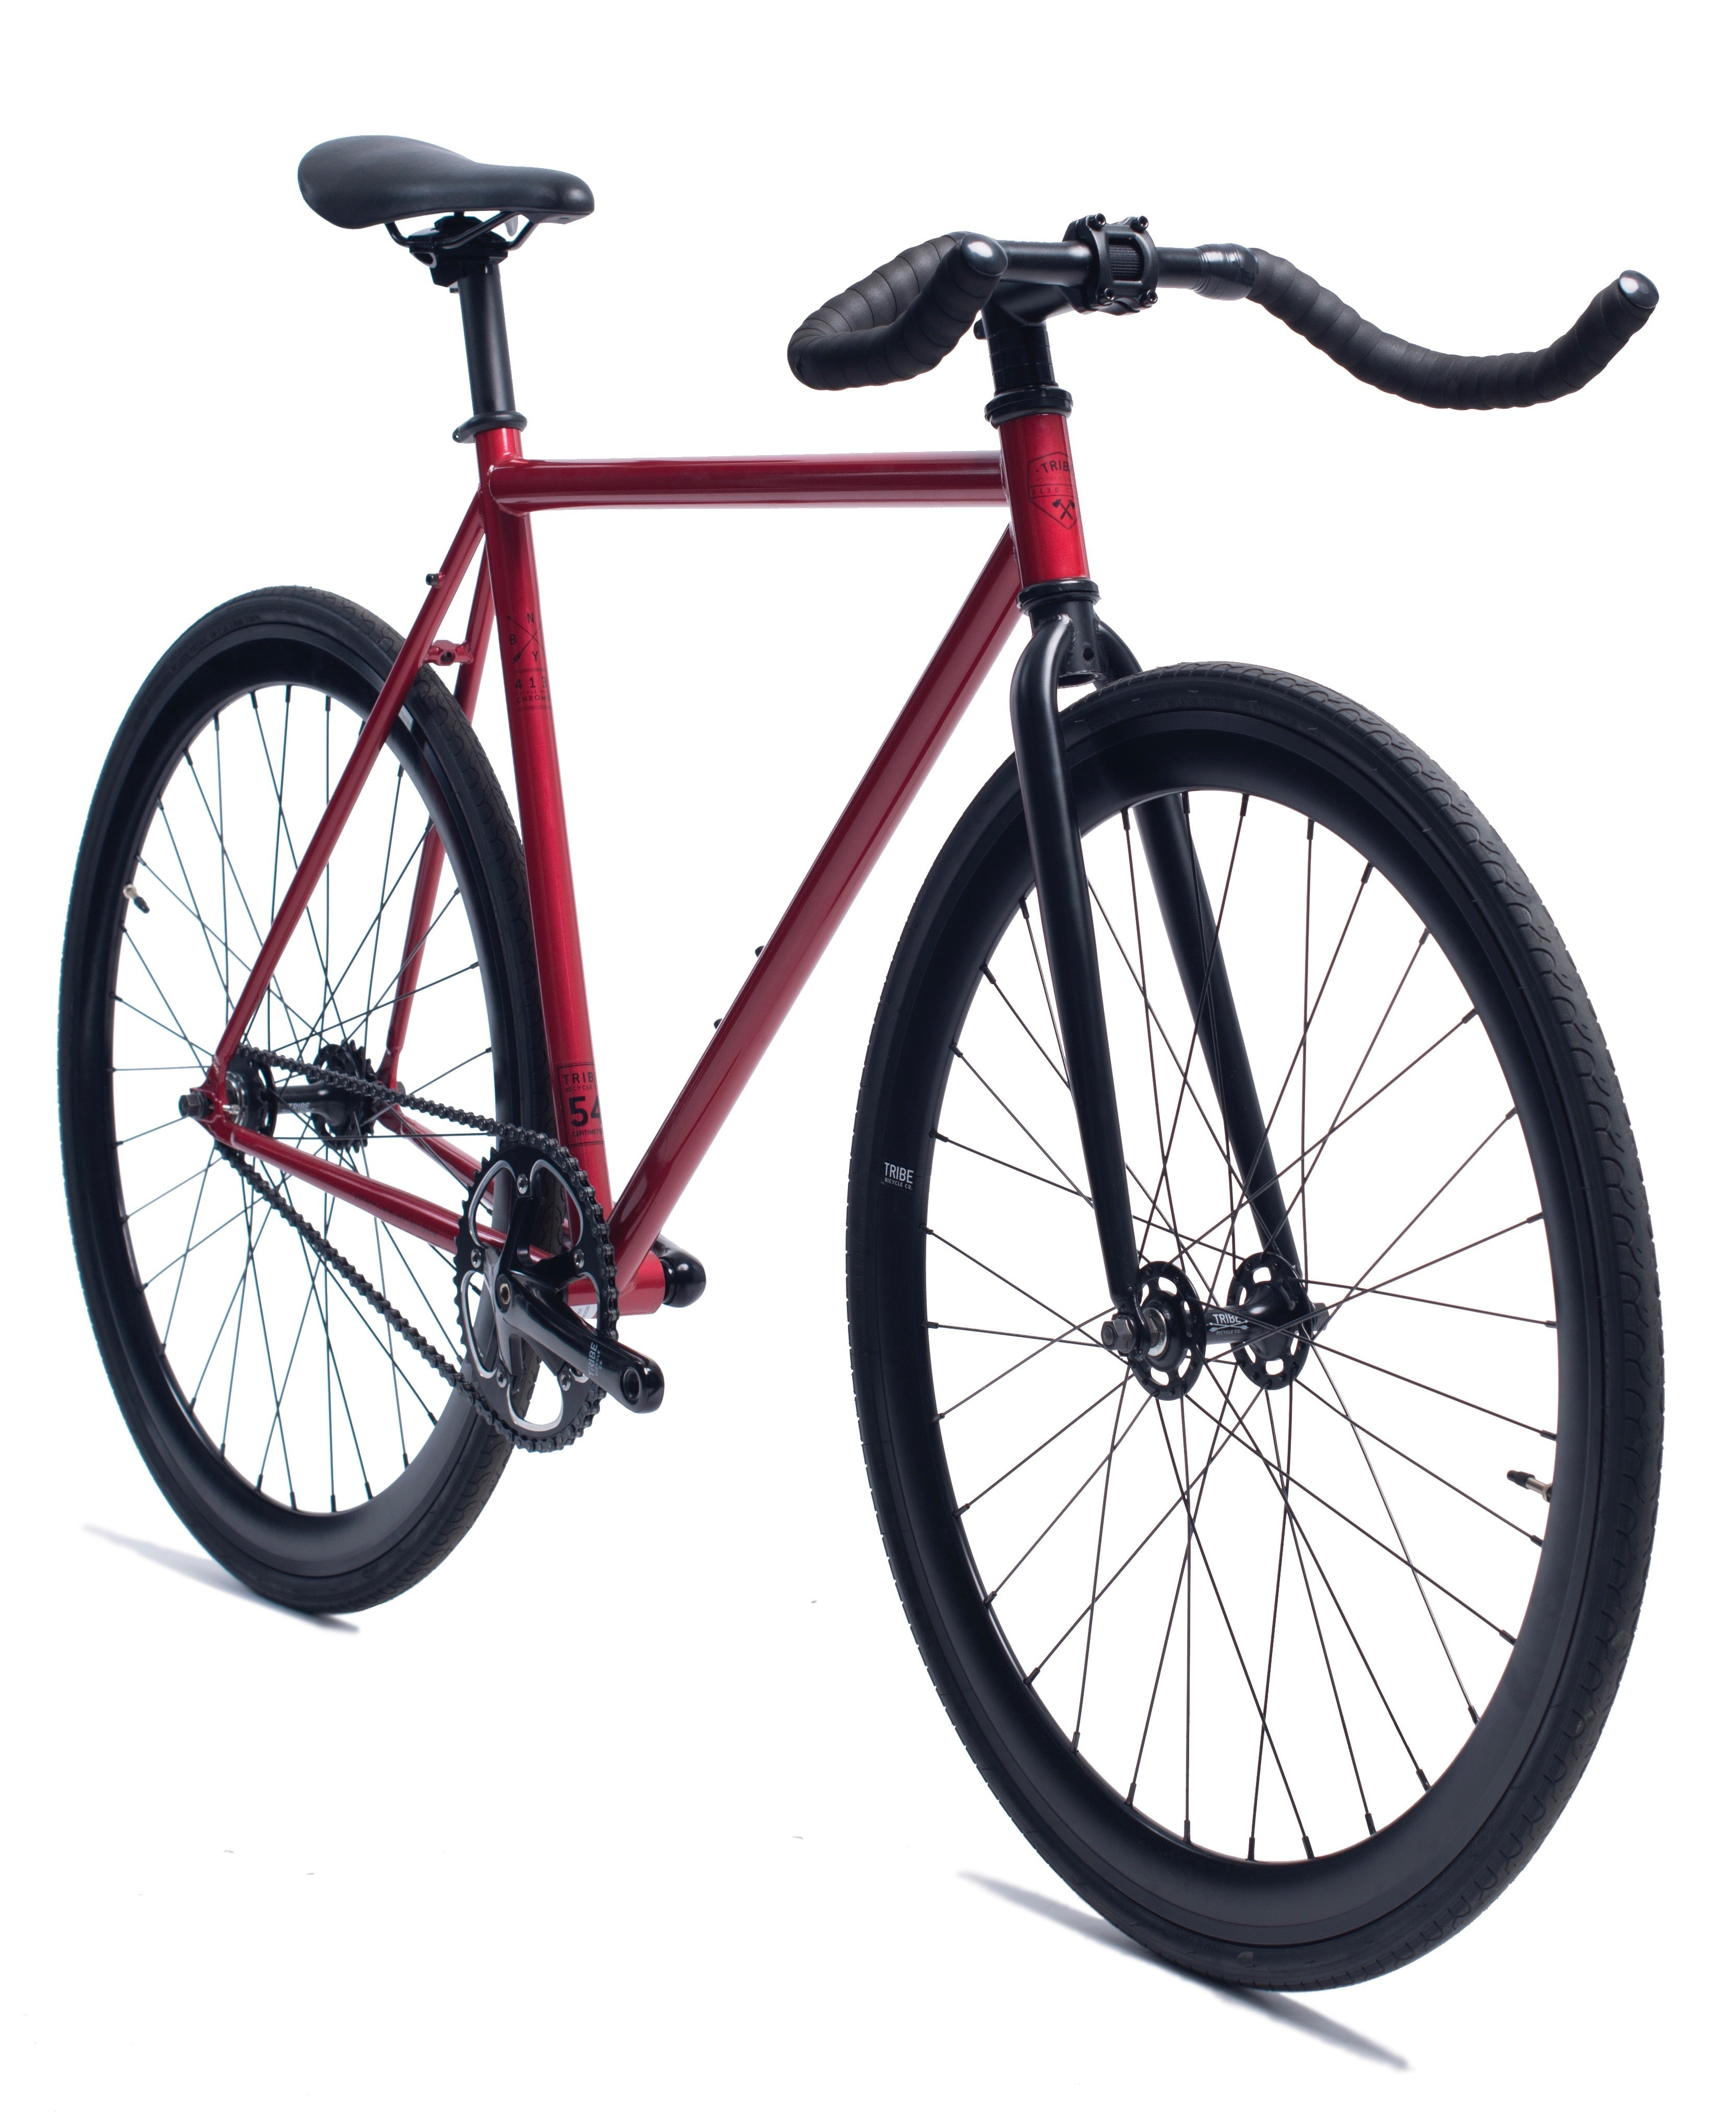 the material used in the frame set which is 4130 chromoly steel recognized as one of the most high quality materials used in bicycle manufactuing